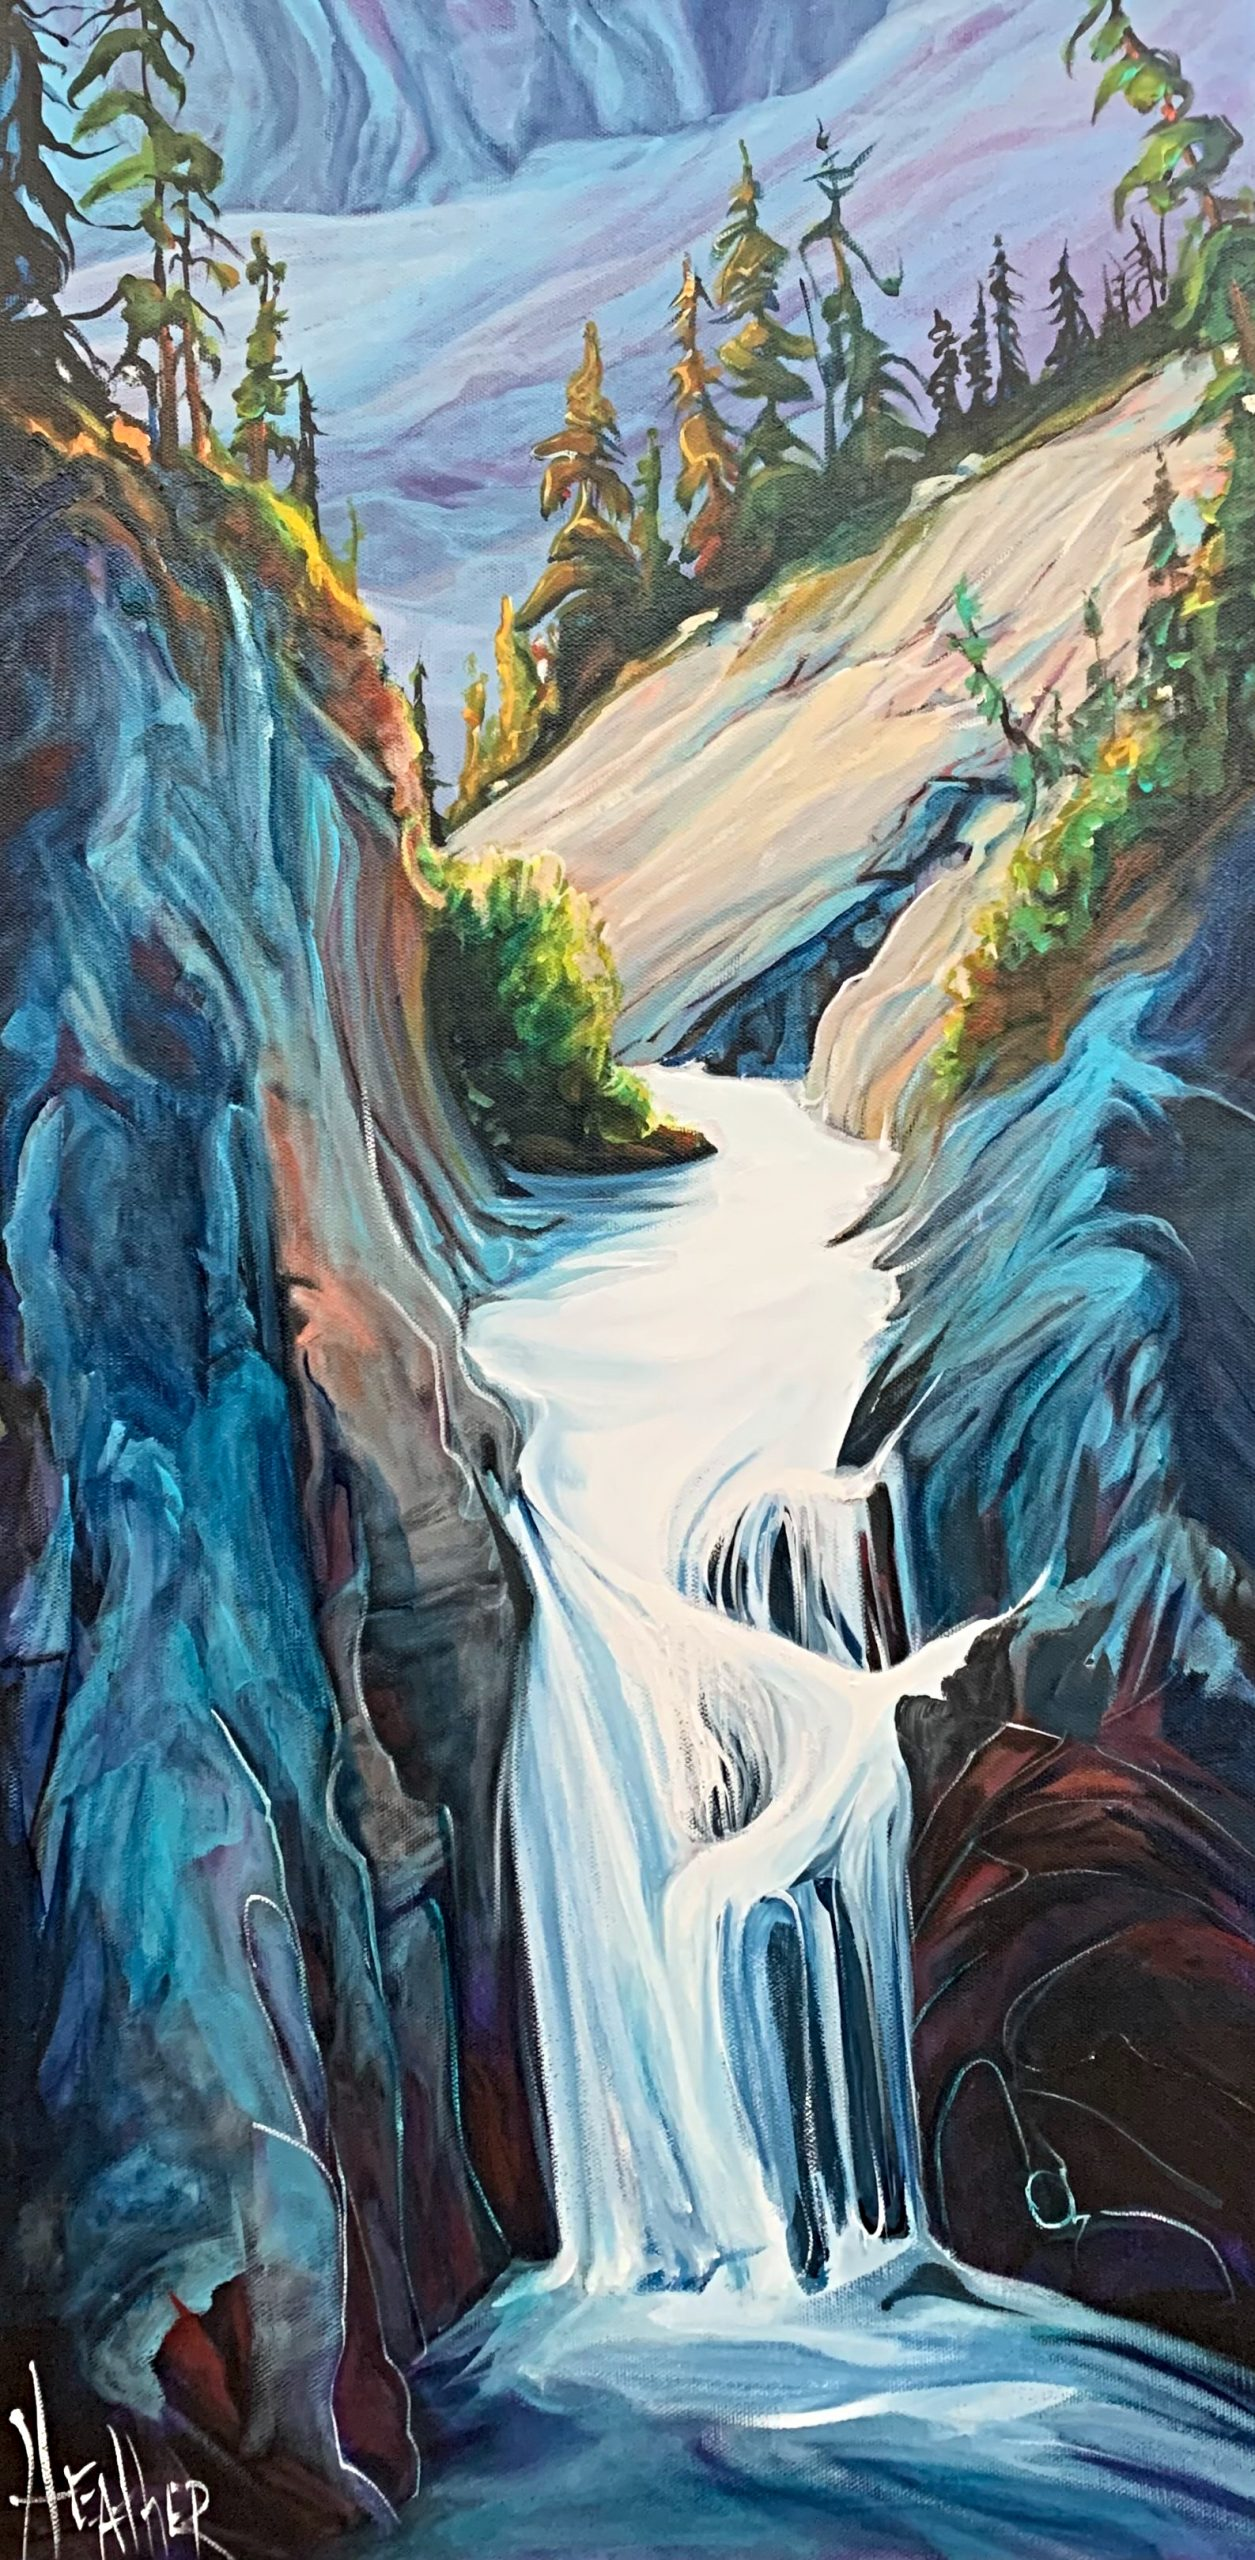 My Endless, landscape painting by Heather Pant | Effusion Art Gallery + Cast Glass Studio, Invermere BC